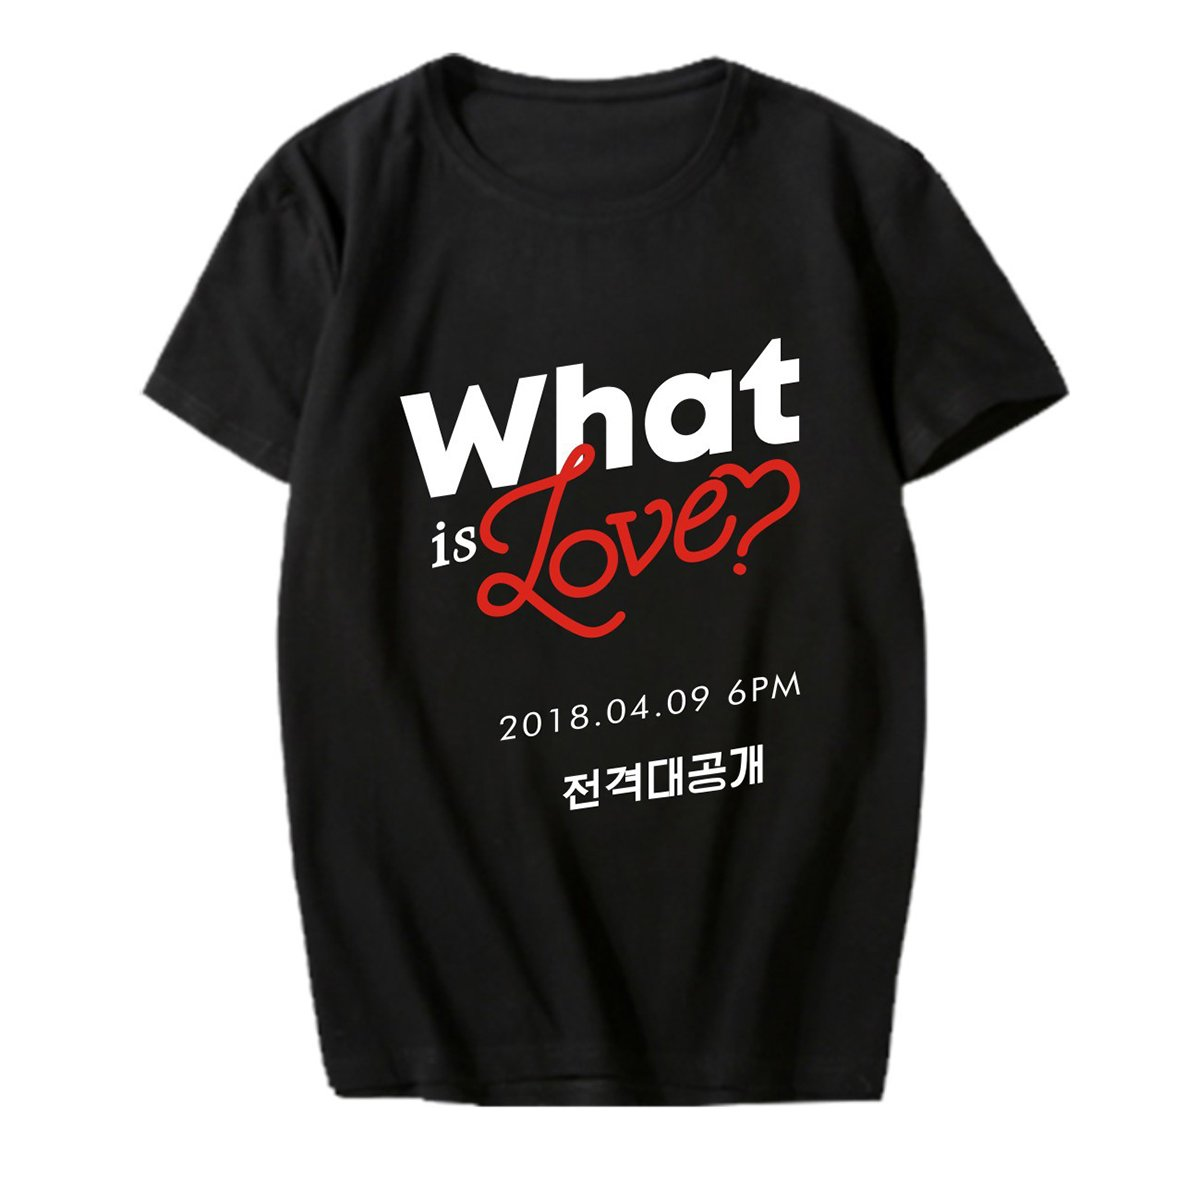 1abbab6b8 Amazon.com : Kpop TWICE New Album What is Love Shirt Tzuyu Momo T-shirt Tee  : Sports & Outdoors